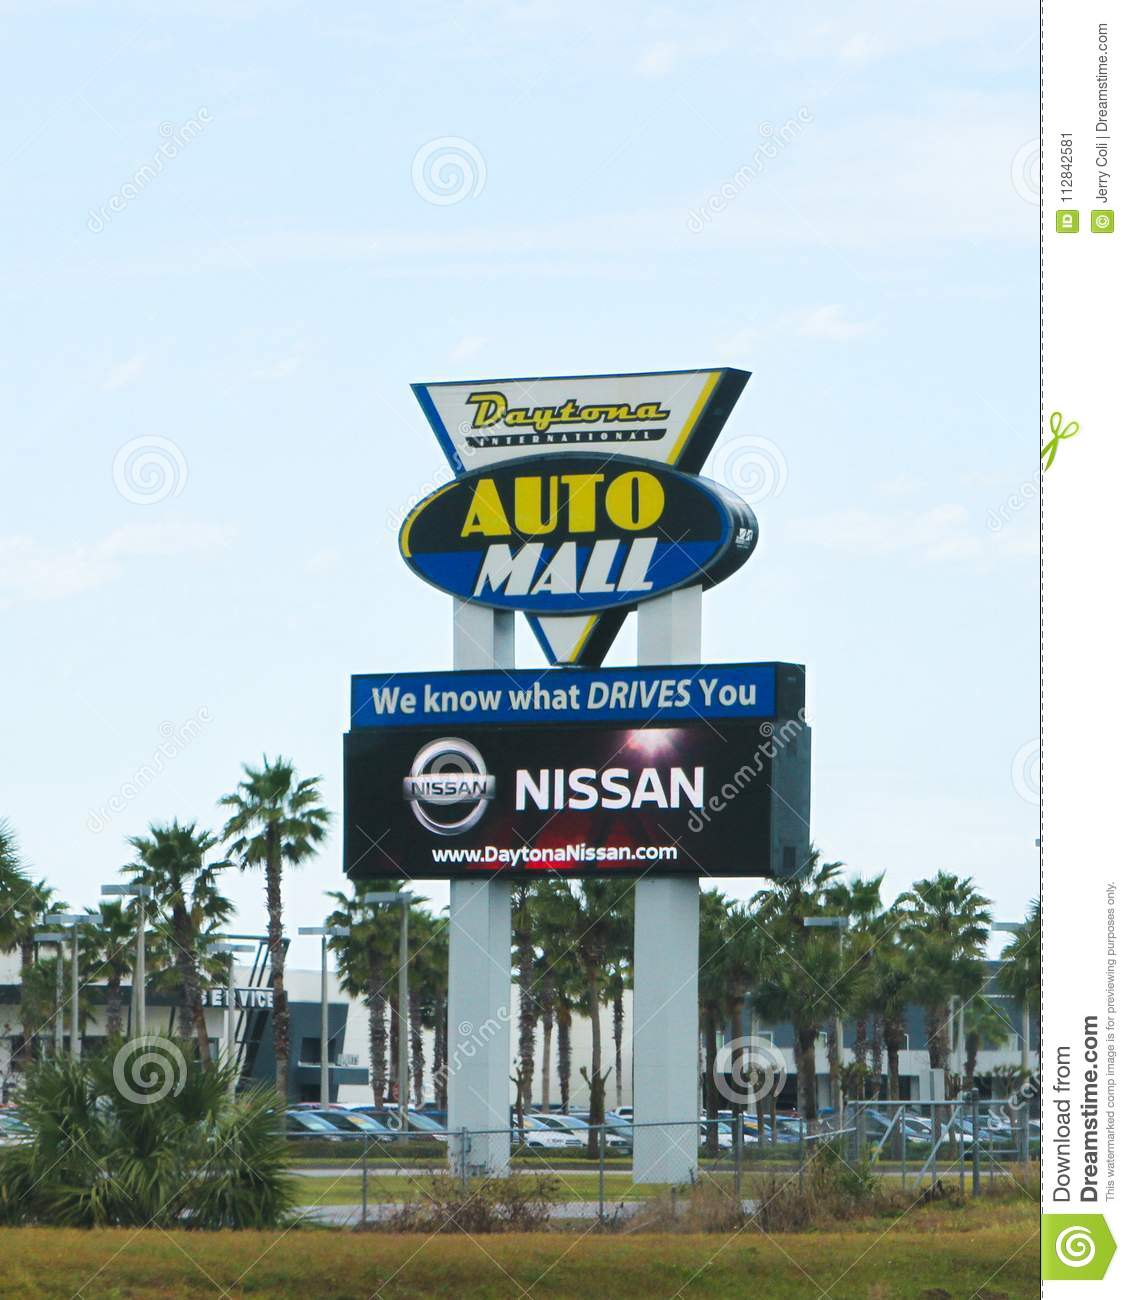 Daytona Auto Mall >> Daytona International Auto Mall Editorial Photo Image Of Auto